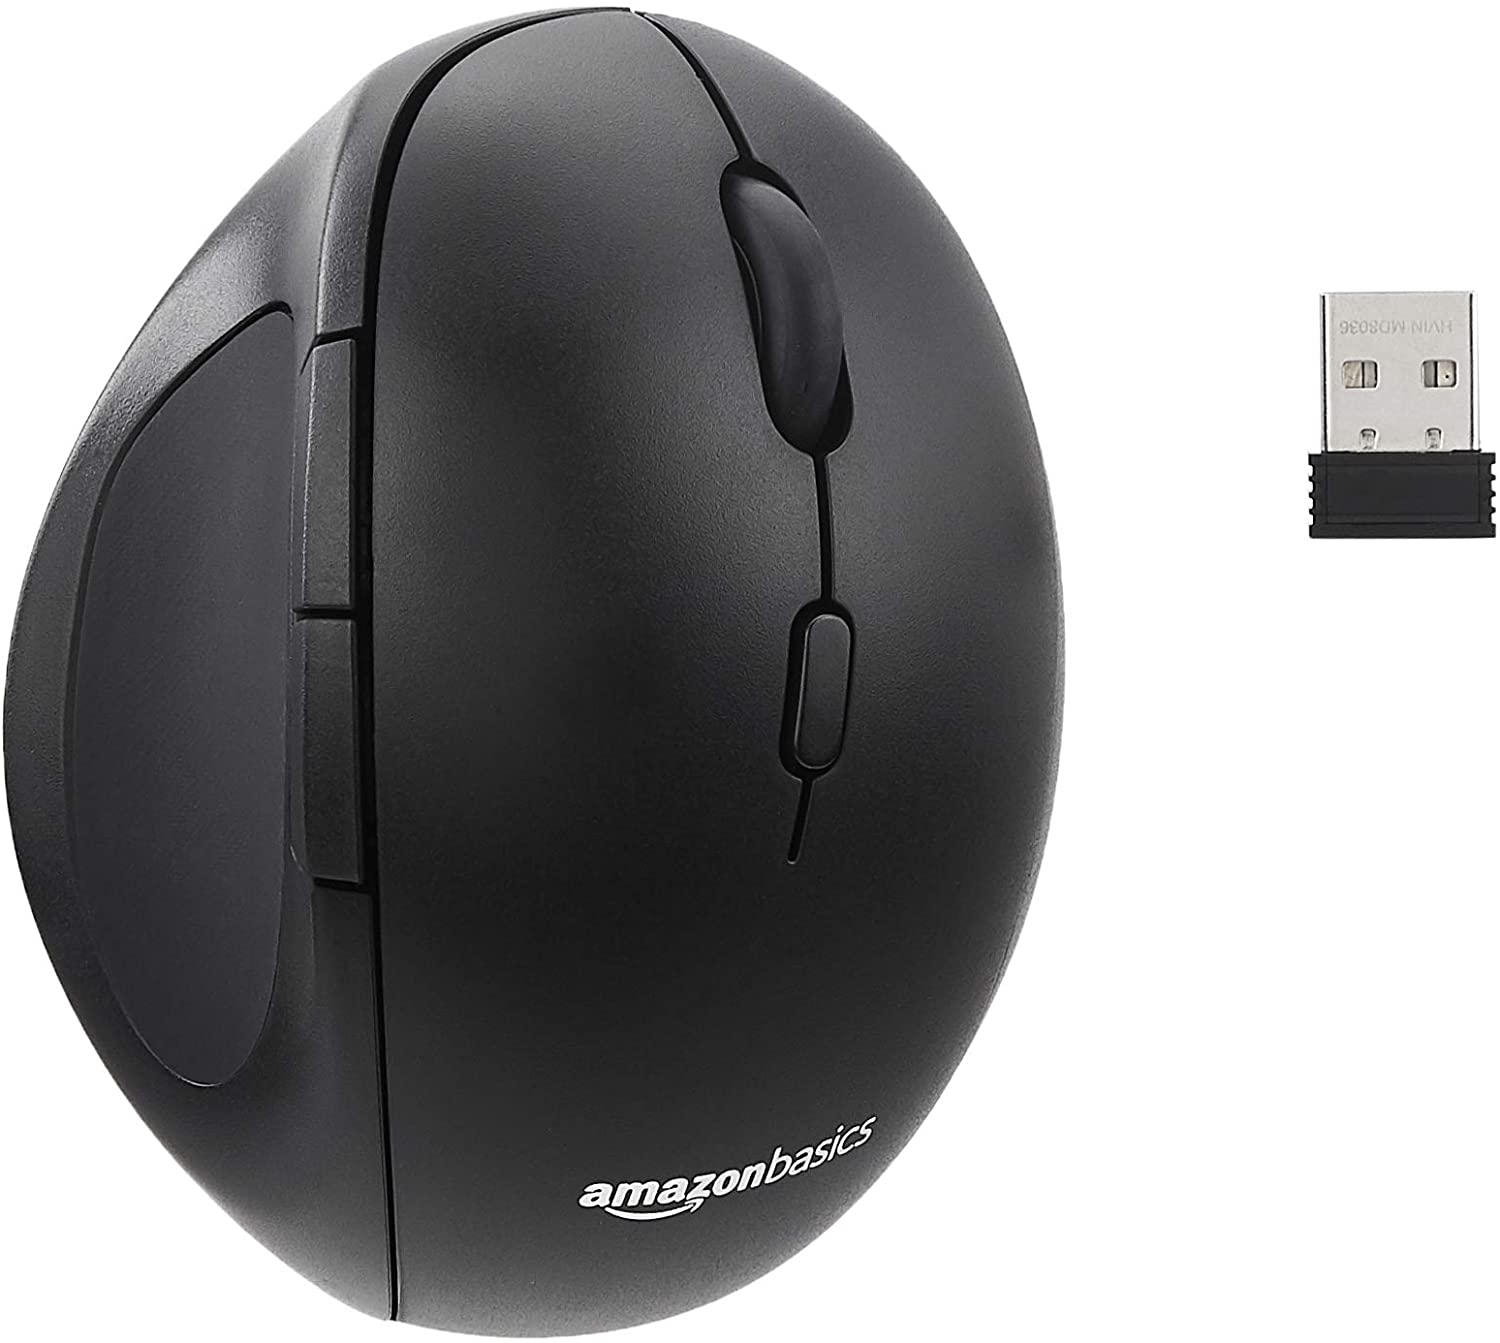 Basics Wireless Tweaked Vertical Ergonomic Optical Mouse